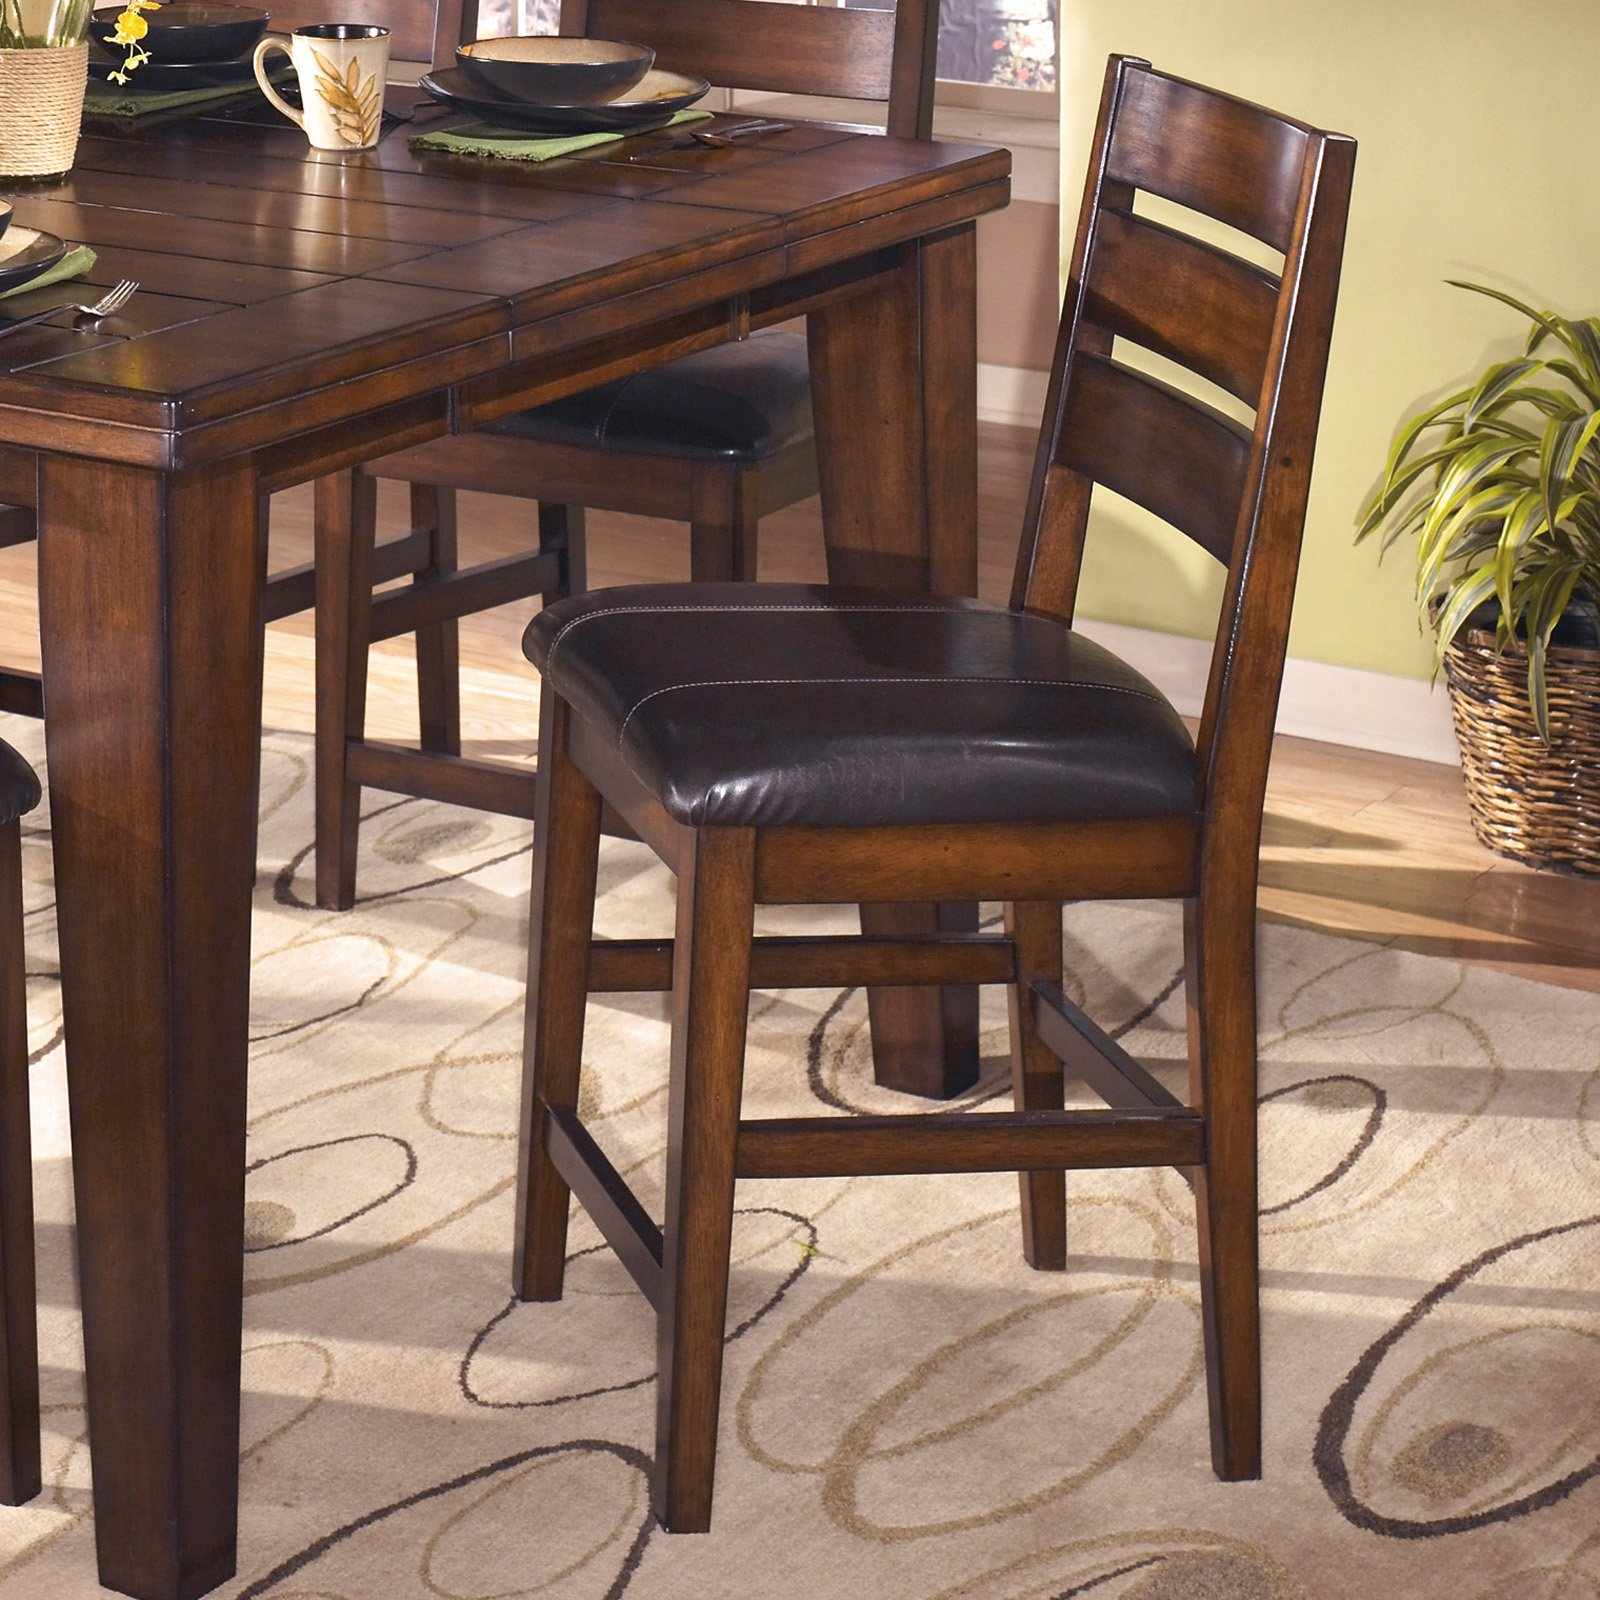 Signature Design by Ashley Larchmont Counter Height Chairs - Set of 2